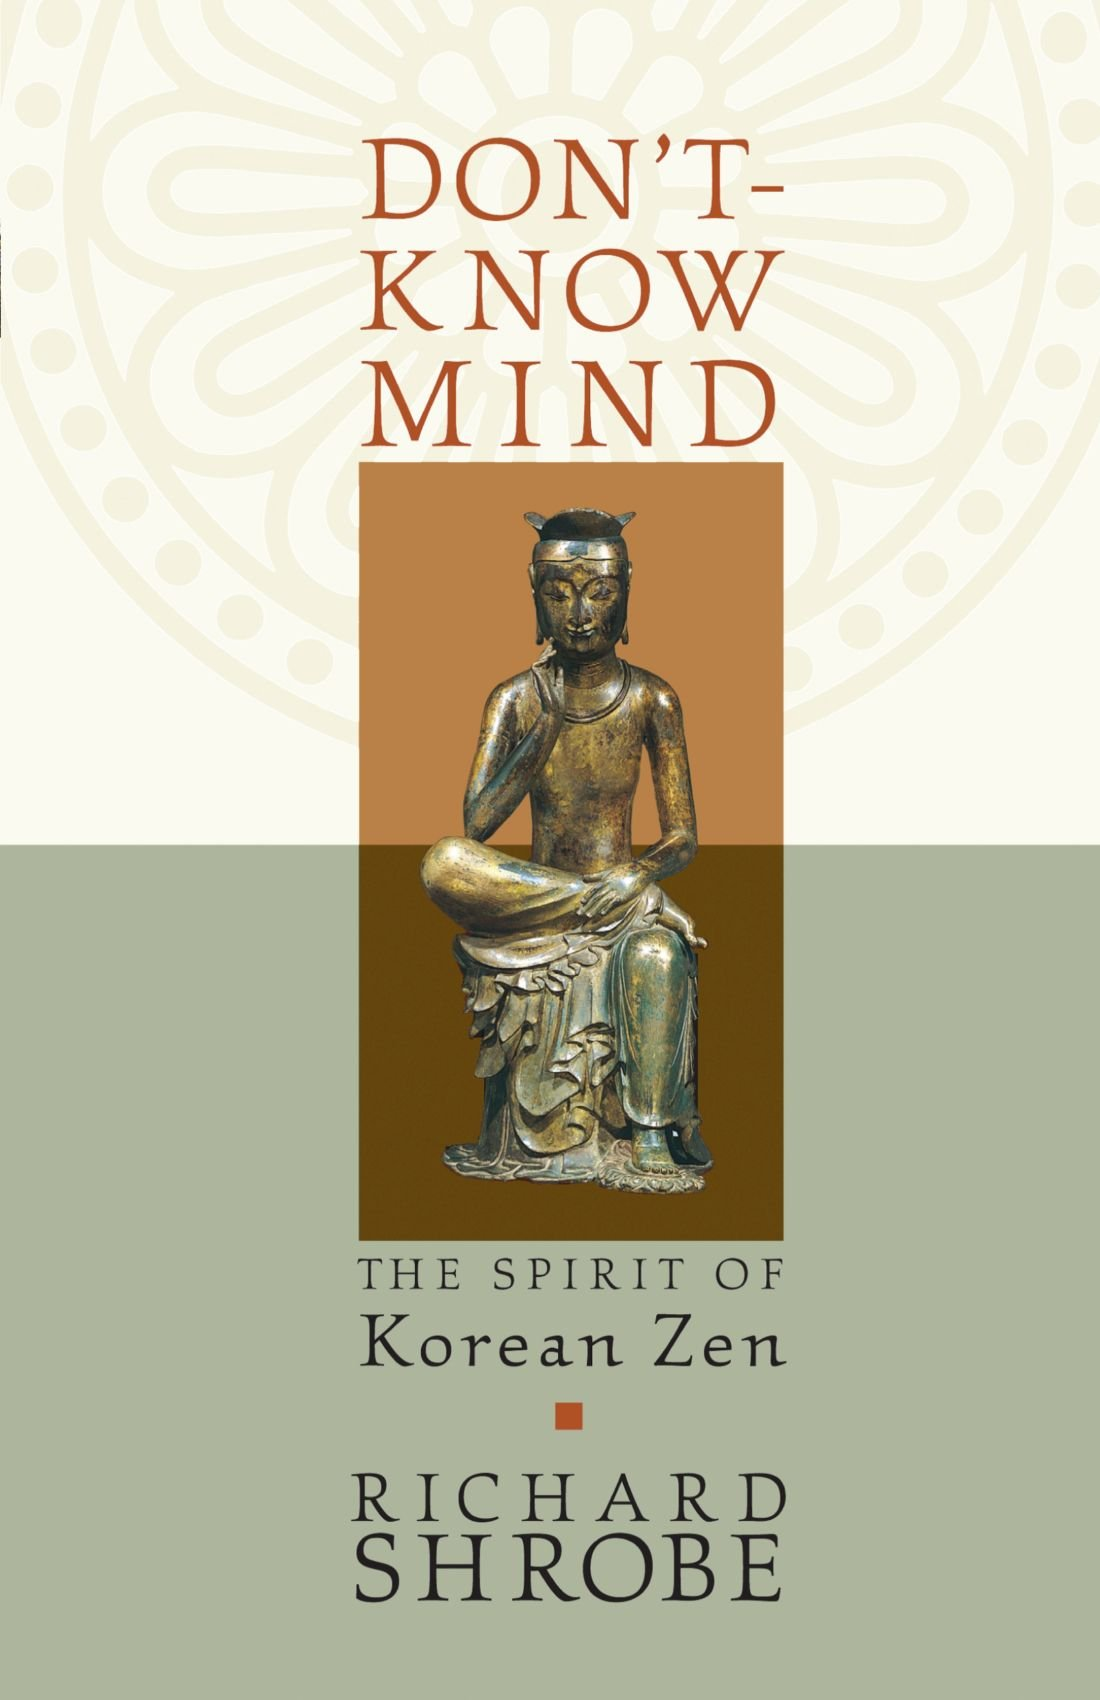 Don't-Know Mind: The Spirit of Korean Zen pdf